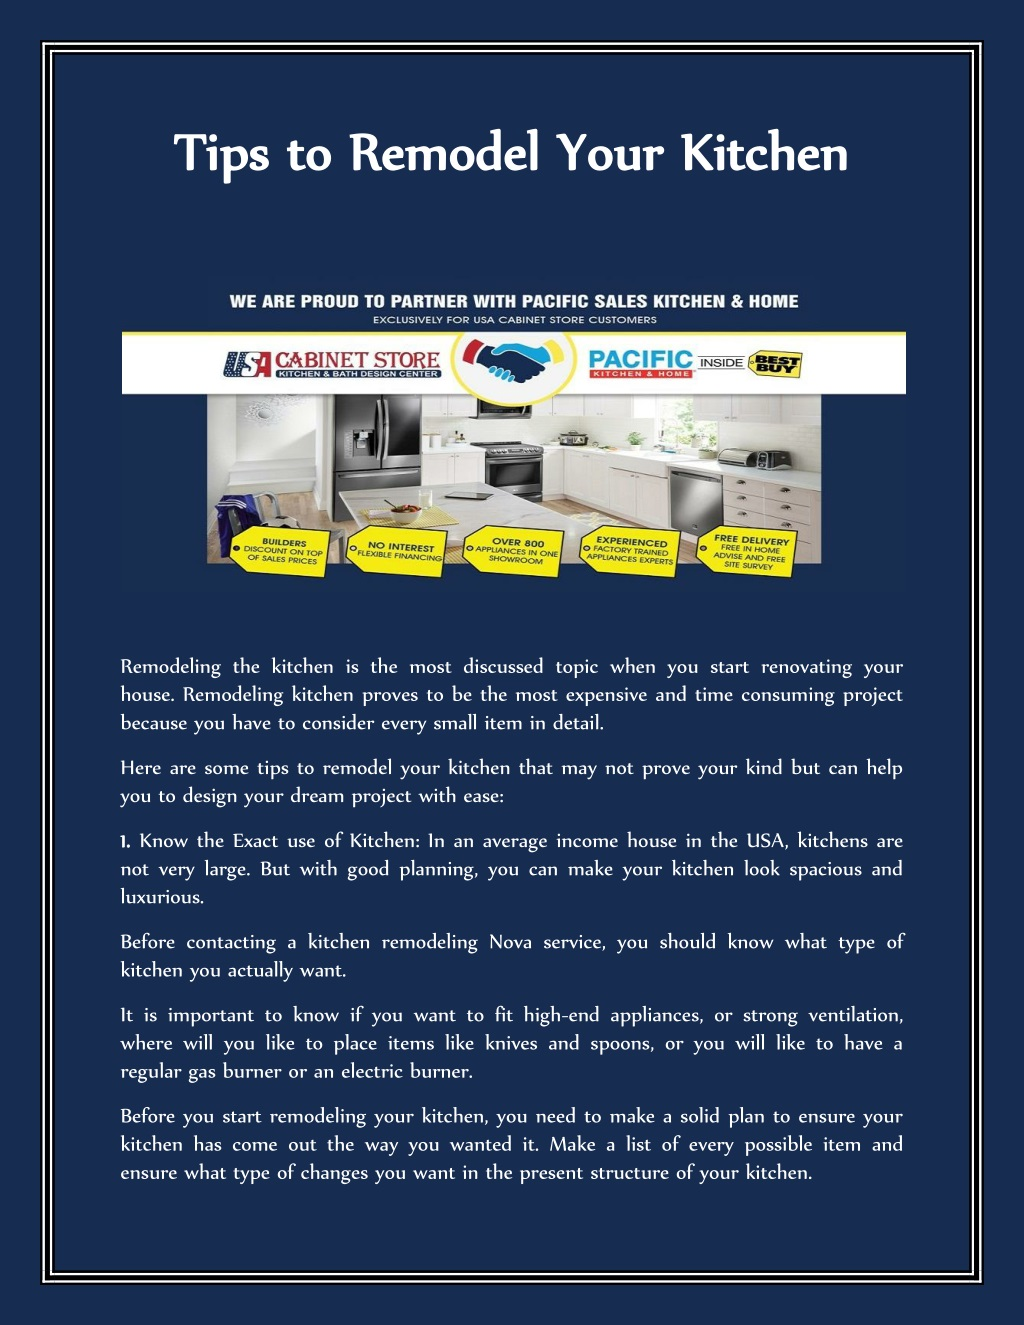 Ppt Tips To Remodel Your Kitchen Powerpoint Presentation Free